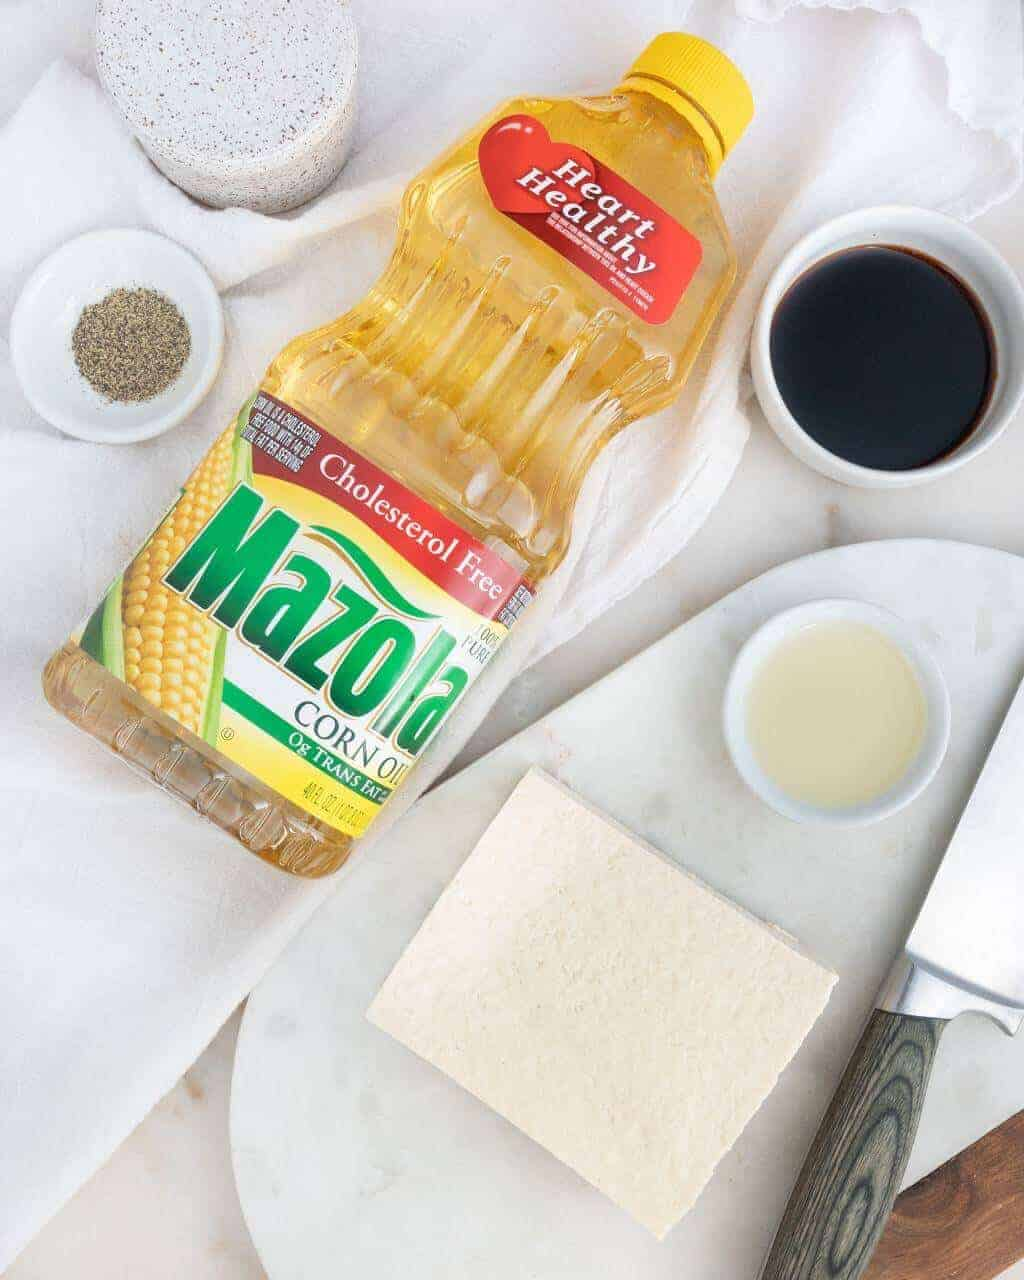 Bottle of Mazola Oil, Soy Sauce, a Block of Tofu, Salt and Pepper and a knife on a Wooden Board